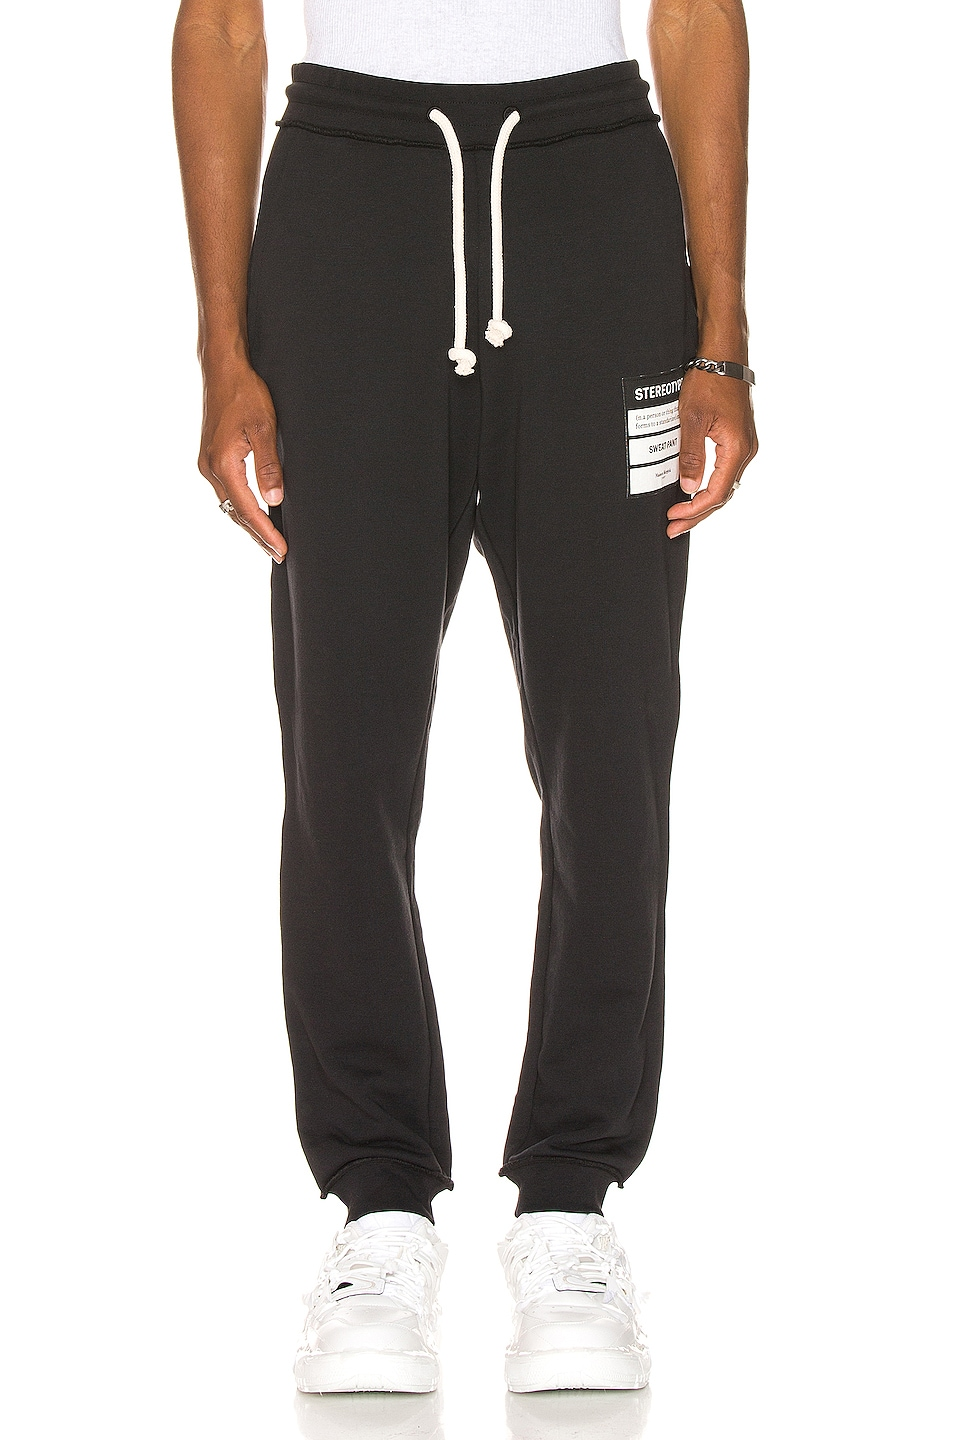 Image 2 of Maison Margiela Stereotype Sweatpants in 900